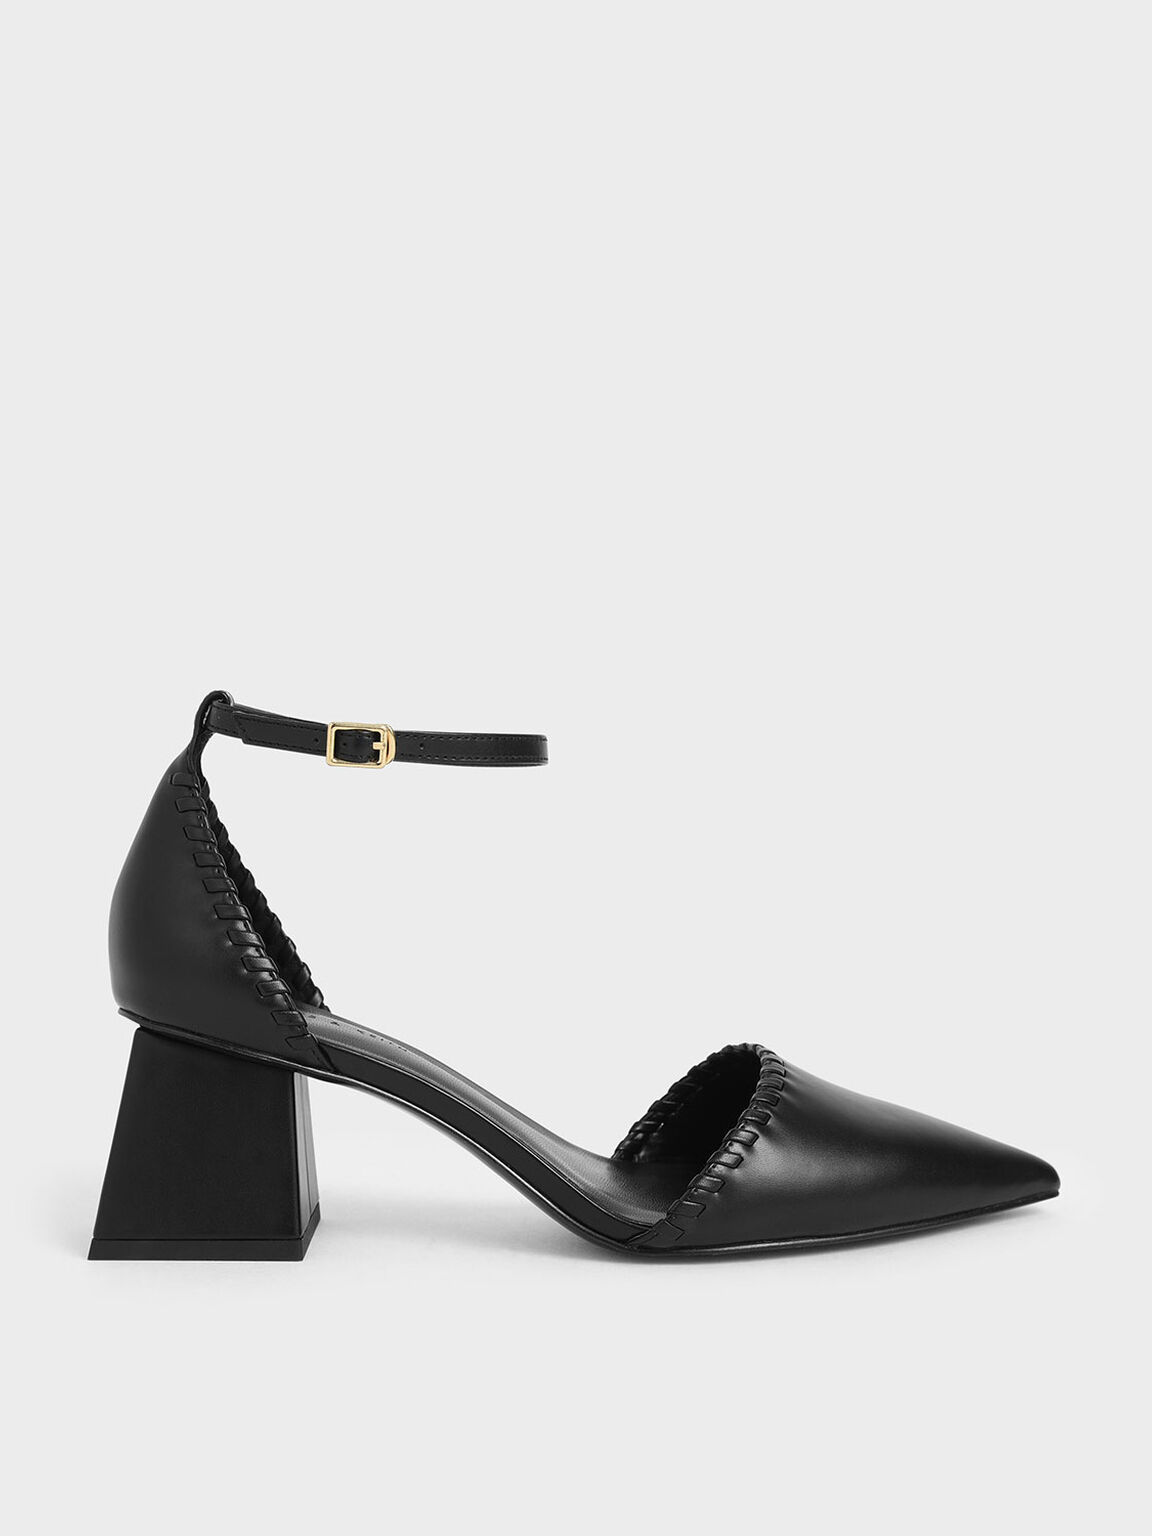 Whipstitch Trim Pumps, Black, hi-res